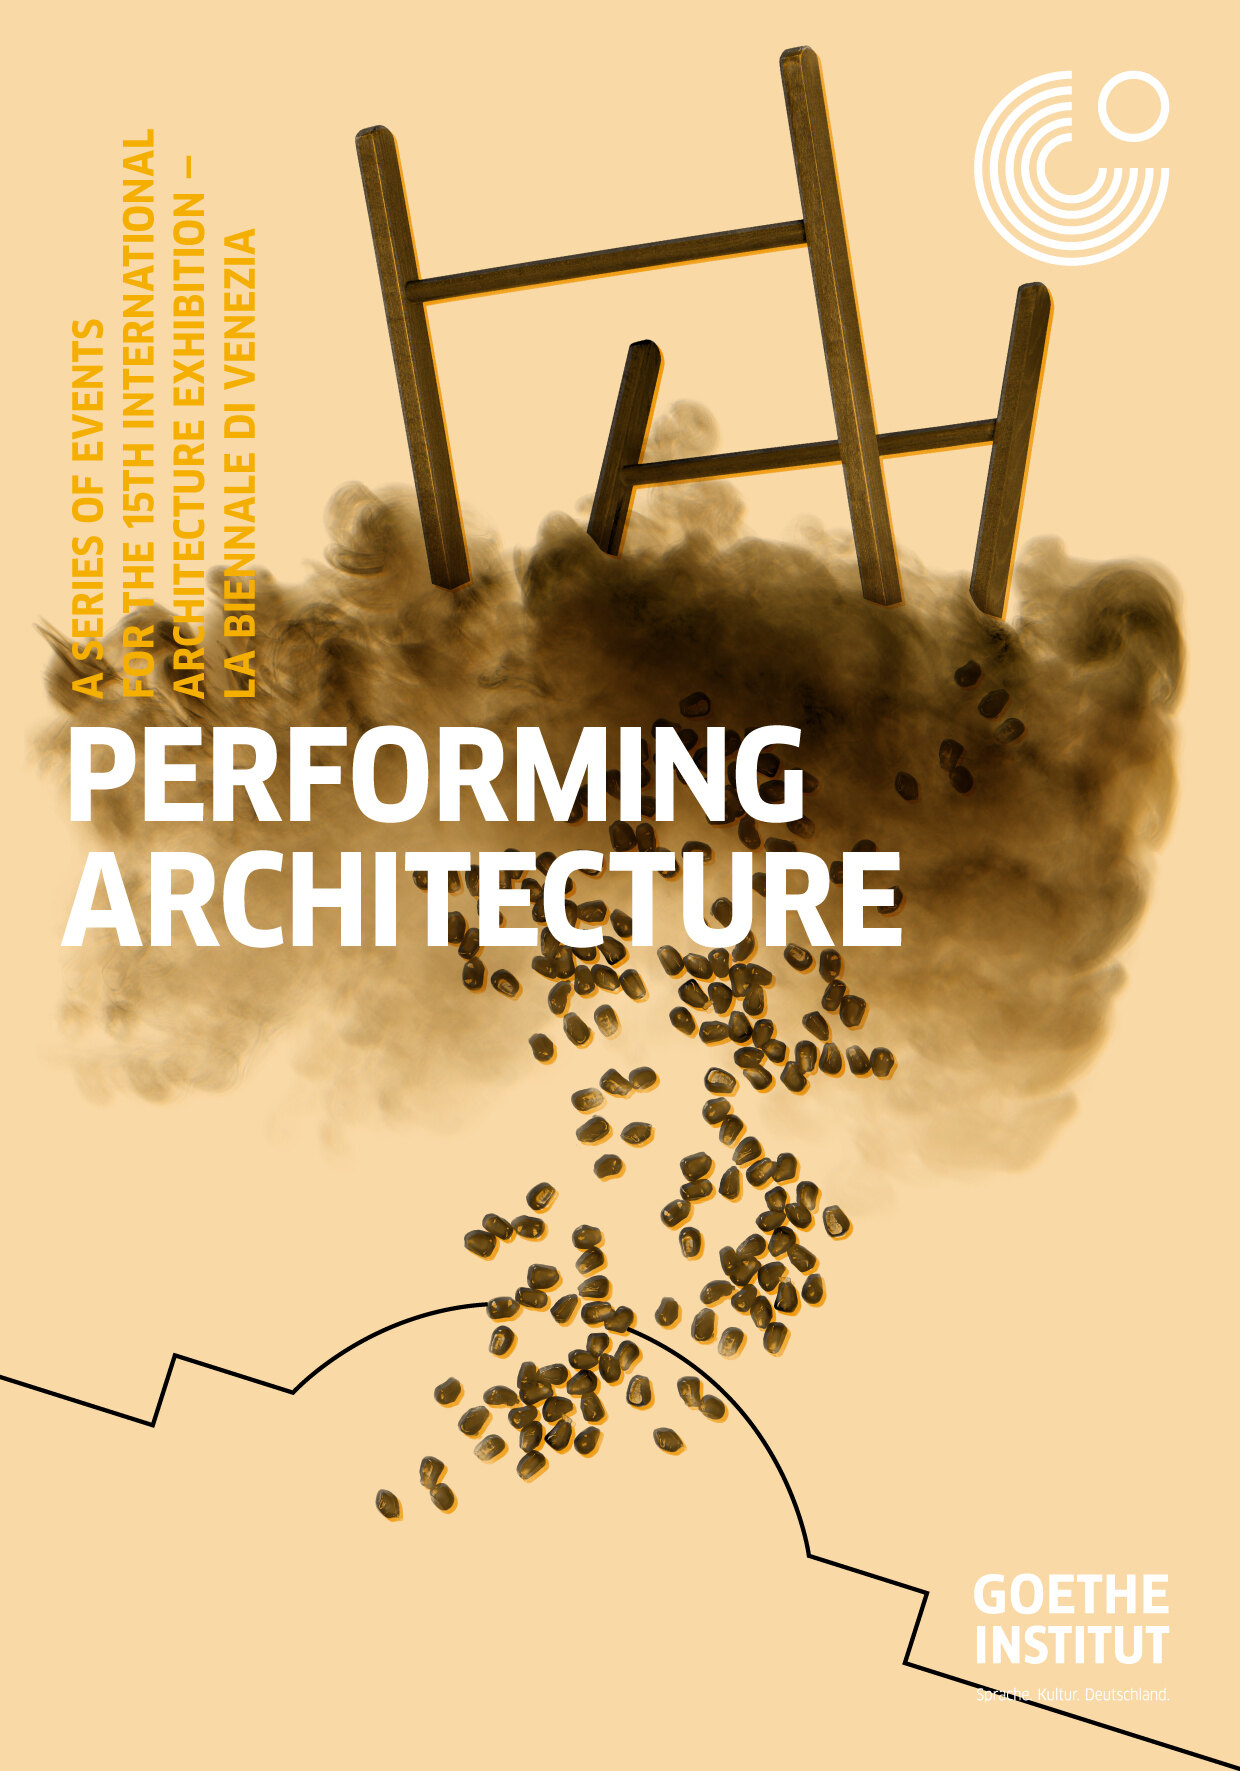 Performing_Architecture_2016_copyright_Harri_Kuhn.jpg